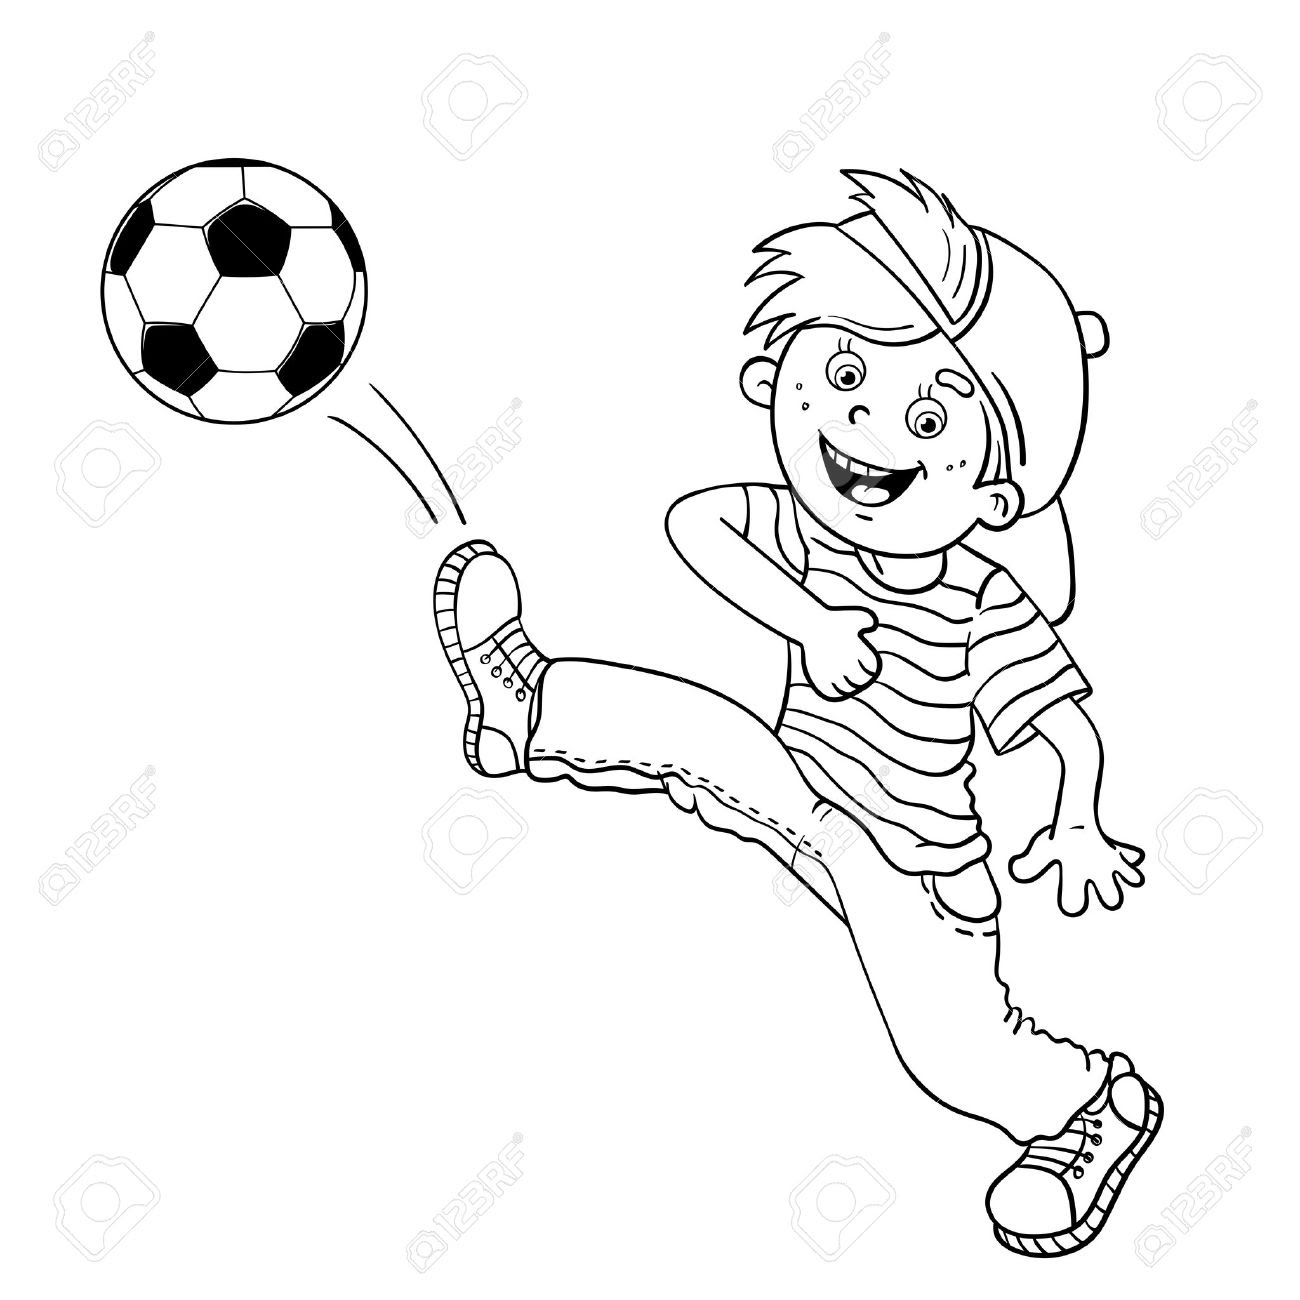 Small Soccer Ball Drawing at GetDrawings.com  Free for personal use Small Soccer Ball Drawing